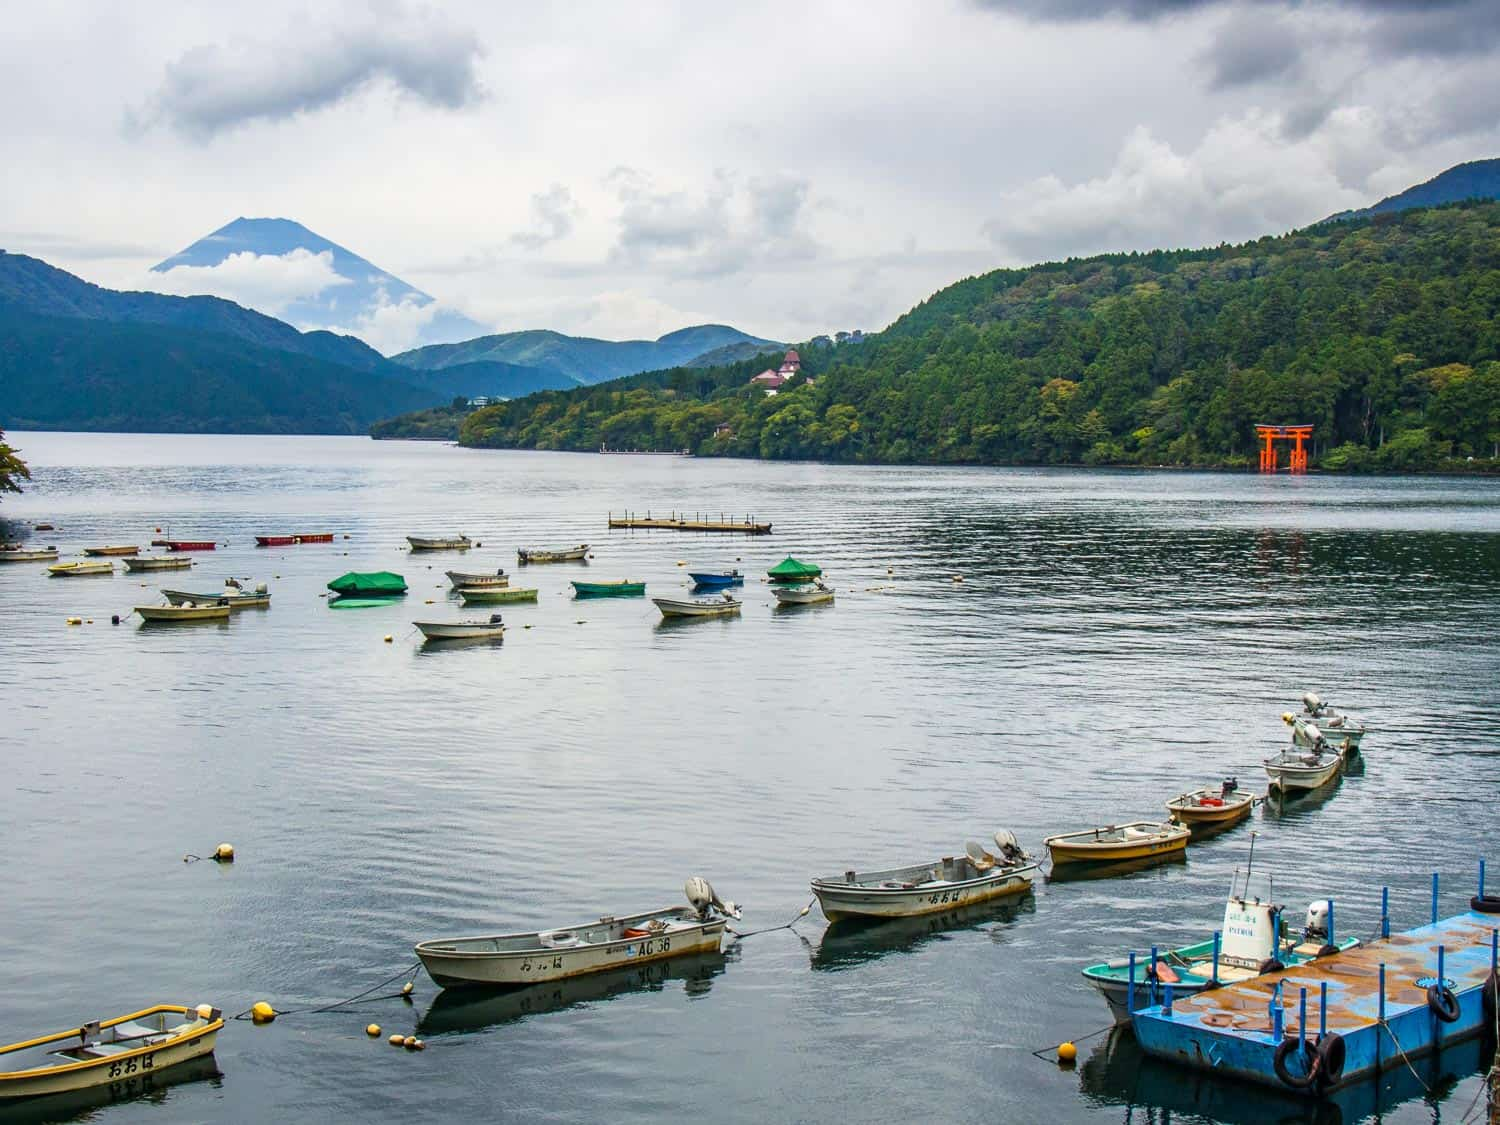 Mount Fuji from Lake Ashi in Hakone, one of the stops on our two week Japan itinerary